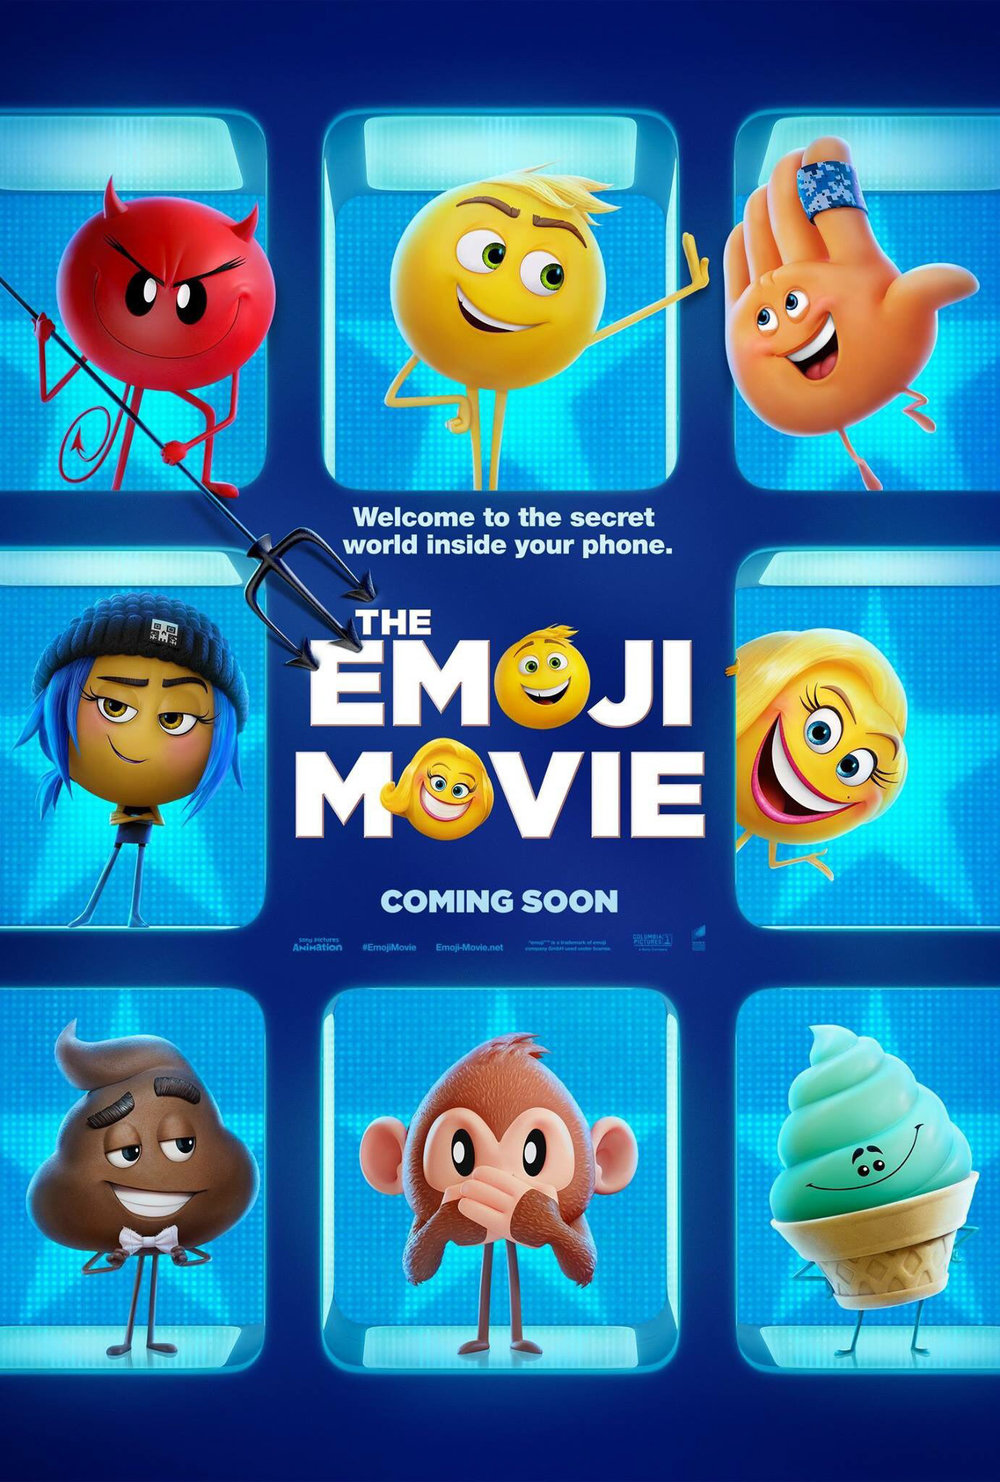 The Emoji Movie - Show Technical Lighting Lead @ Sony Imageworks Vancouver